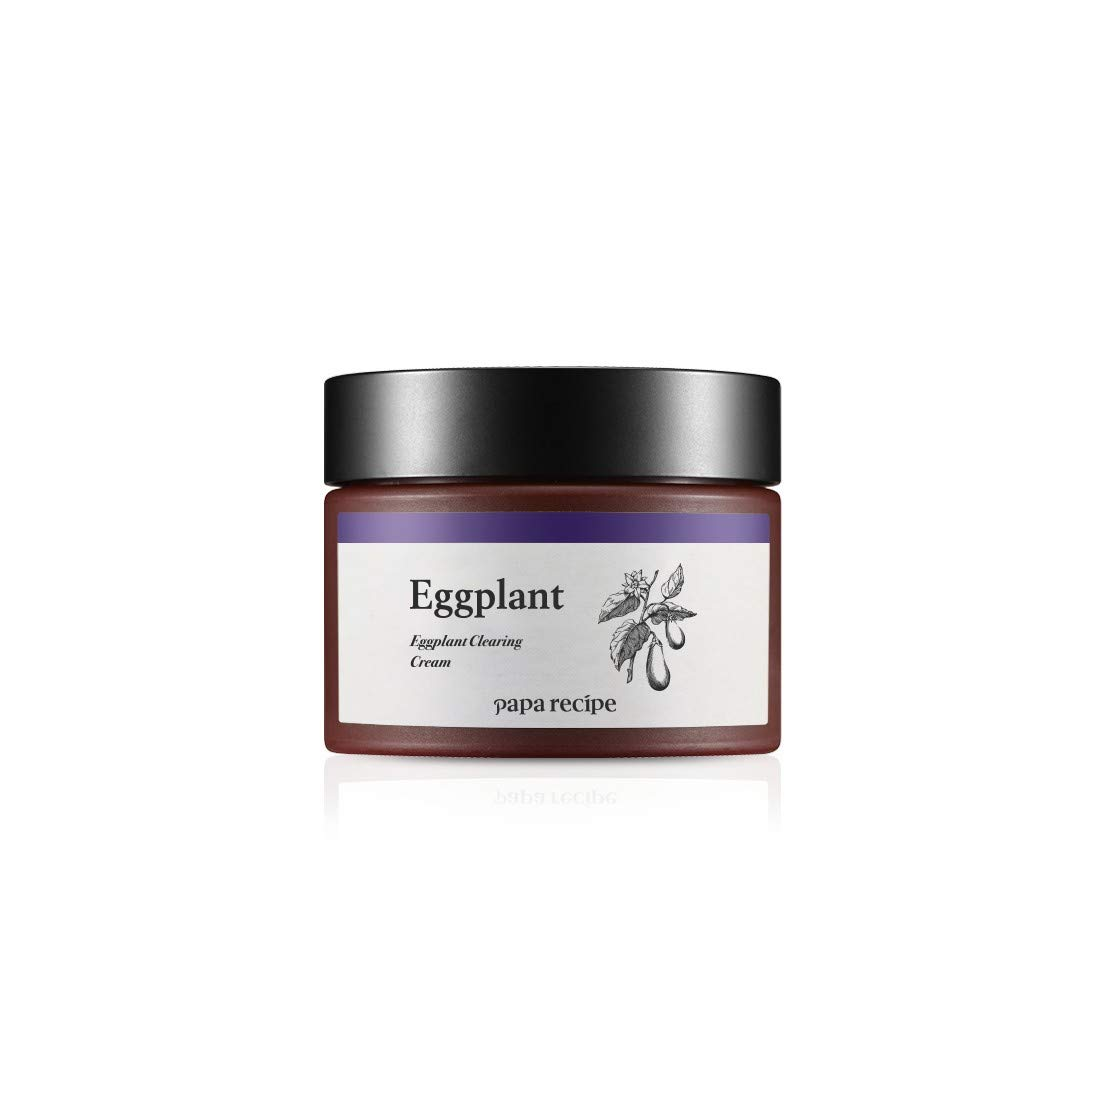 Papa Recipe Eggplant Clearing Cream, 50ml by Papa Recipe